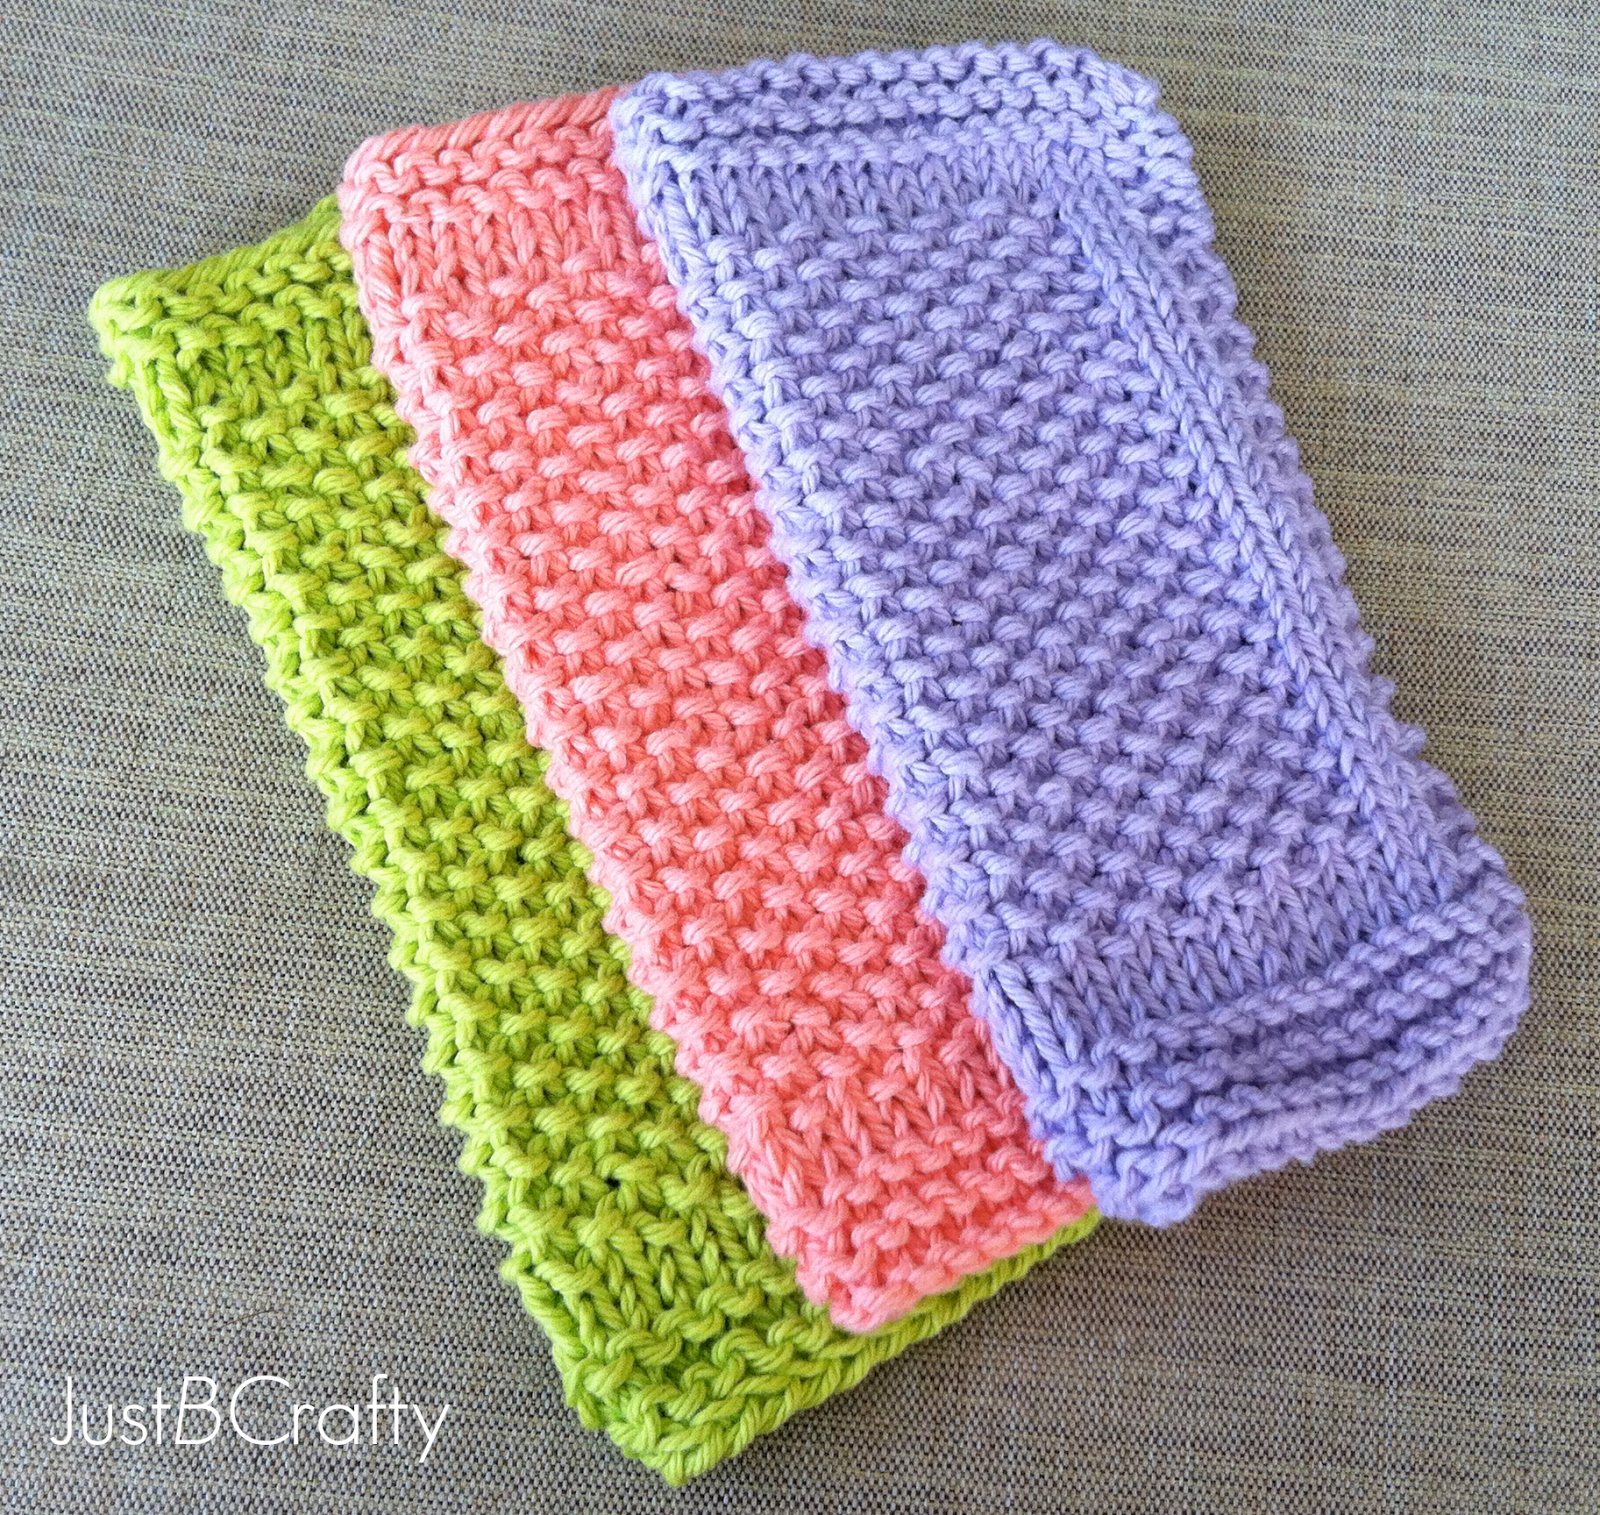 Dishcloth Knitting Pattern : Seed Stitch Dishcloths - Just Be Crafty